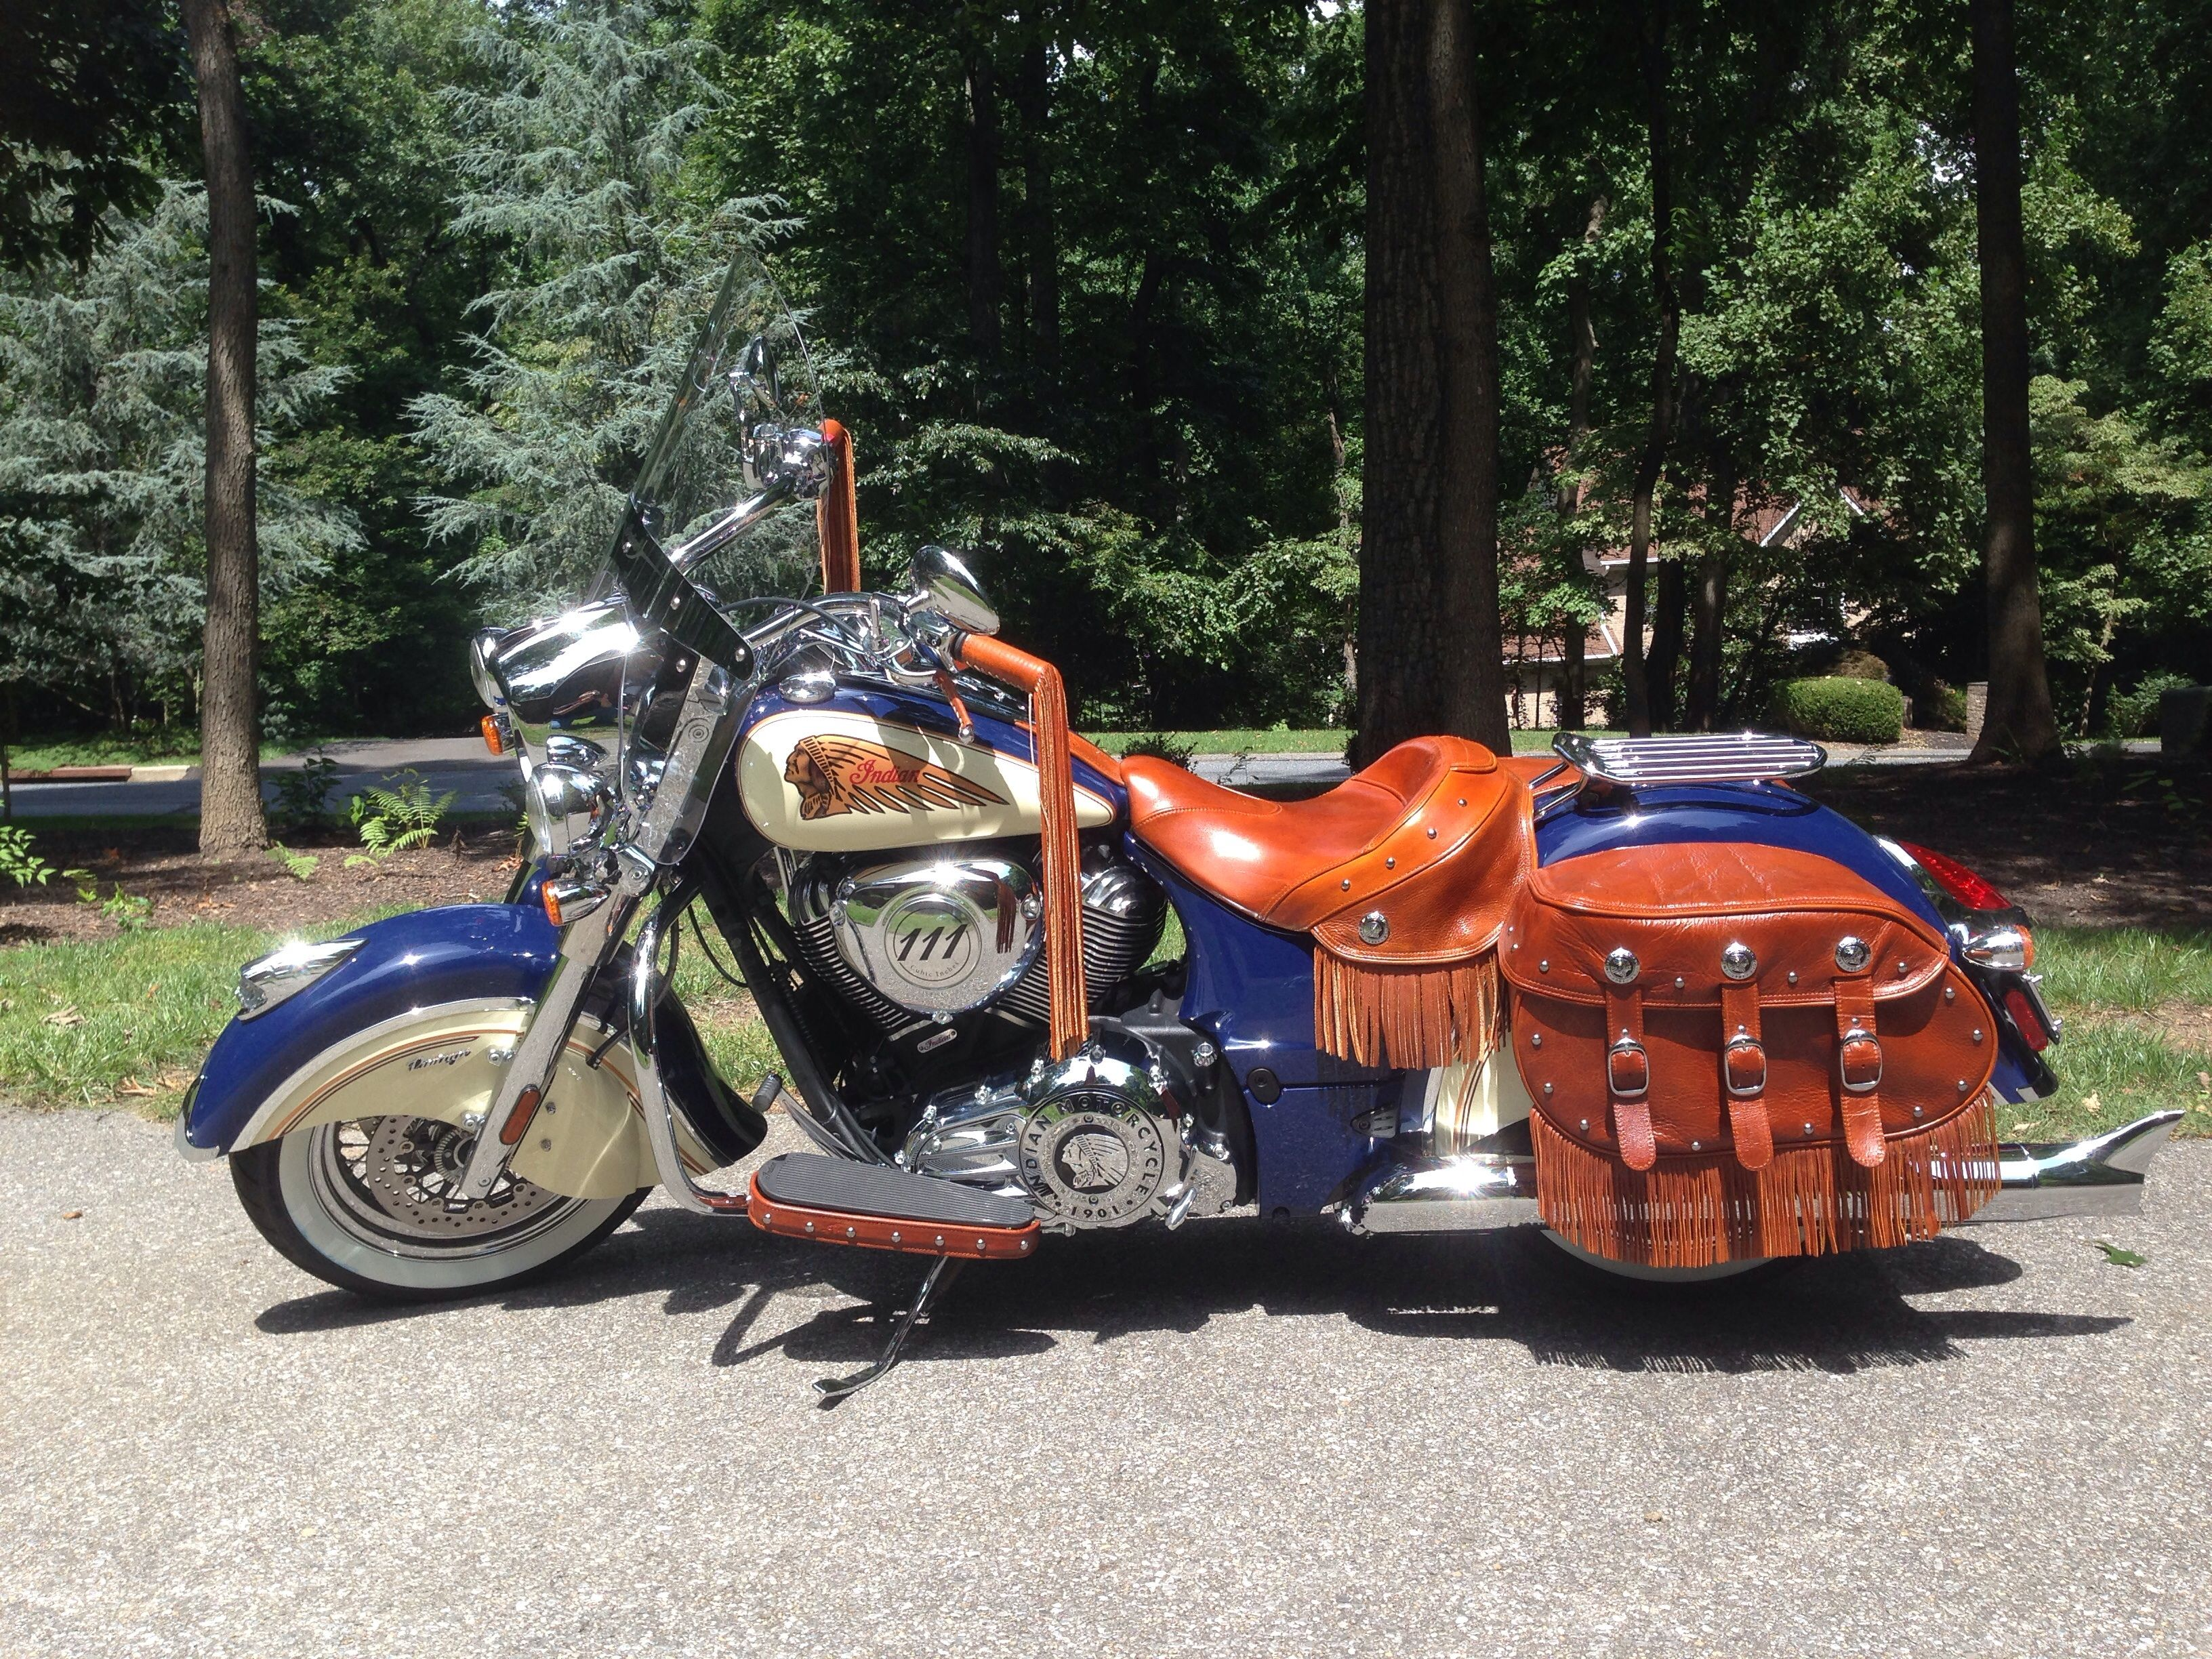 2014 Indian Vintage Custom Paint Oil Dyed Leather Many Add Ons Indian Motorcycle Indian Chief Bike Classic Harley Davidson [ 2448 x 3264 Pixel ]